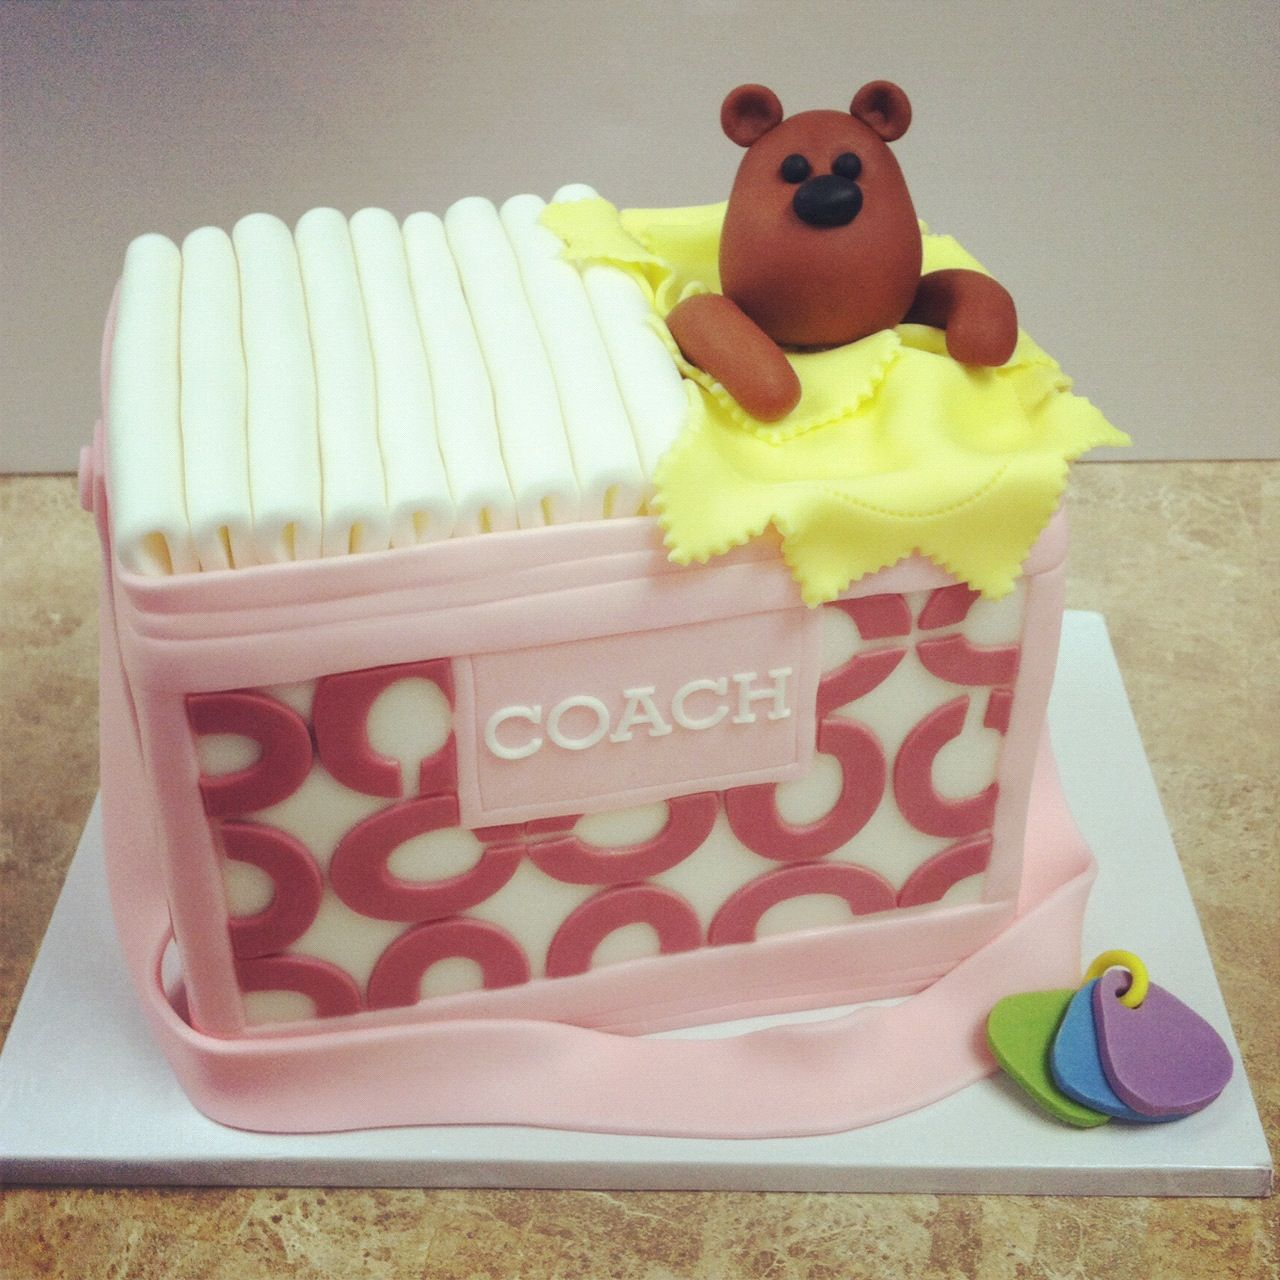 445c8ea1f078 ... Coach Diaper Bag cake.. omg I will have this at my baby shower!